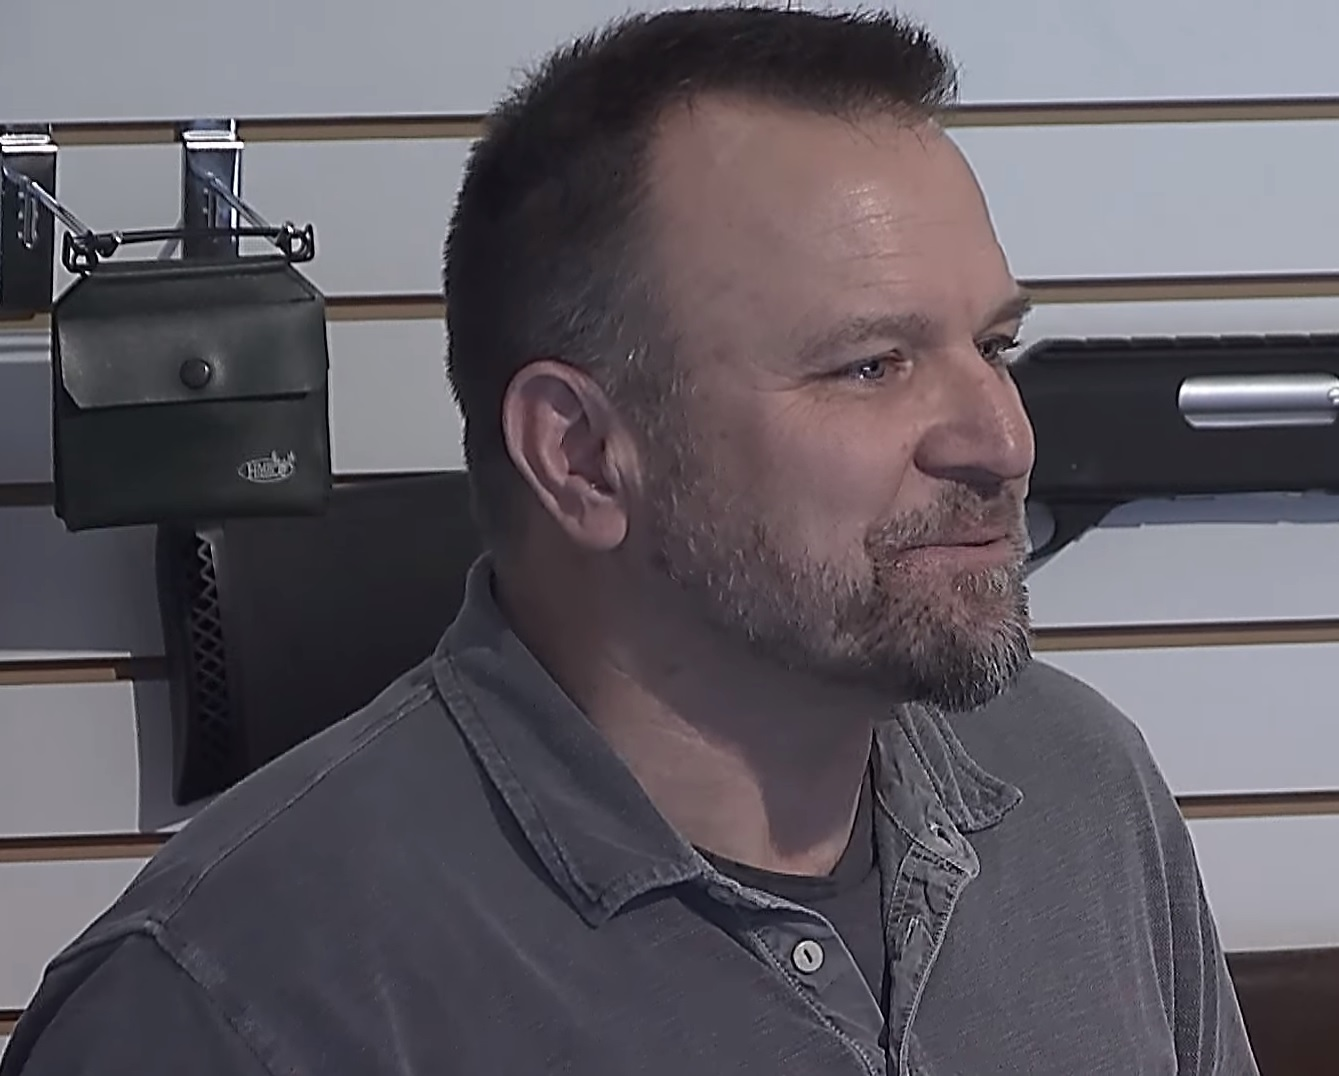 Coaching / Guide ned luke